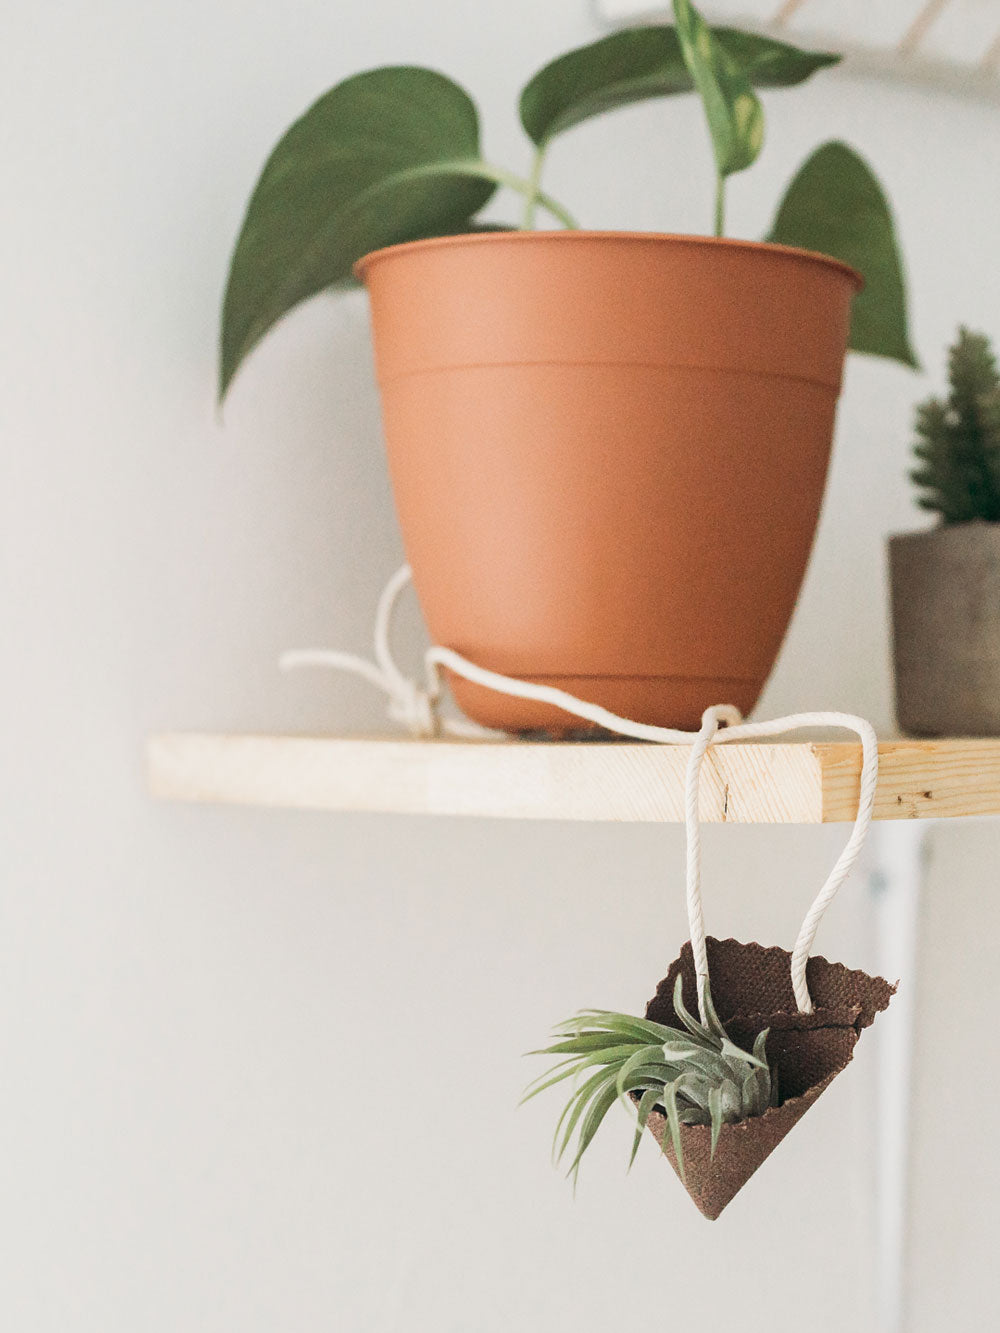 An air plant sits in a dark brown fabric cone holder. The air plant holder hangs from its cord from the edge of a wooden floating shelf. Another plant with a few medium sized leaves sits on the shelf in a terra cotta colored plant holder.